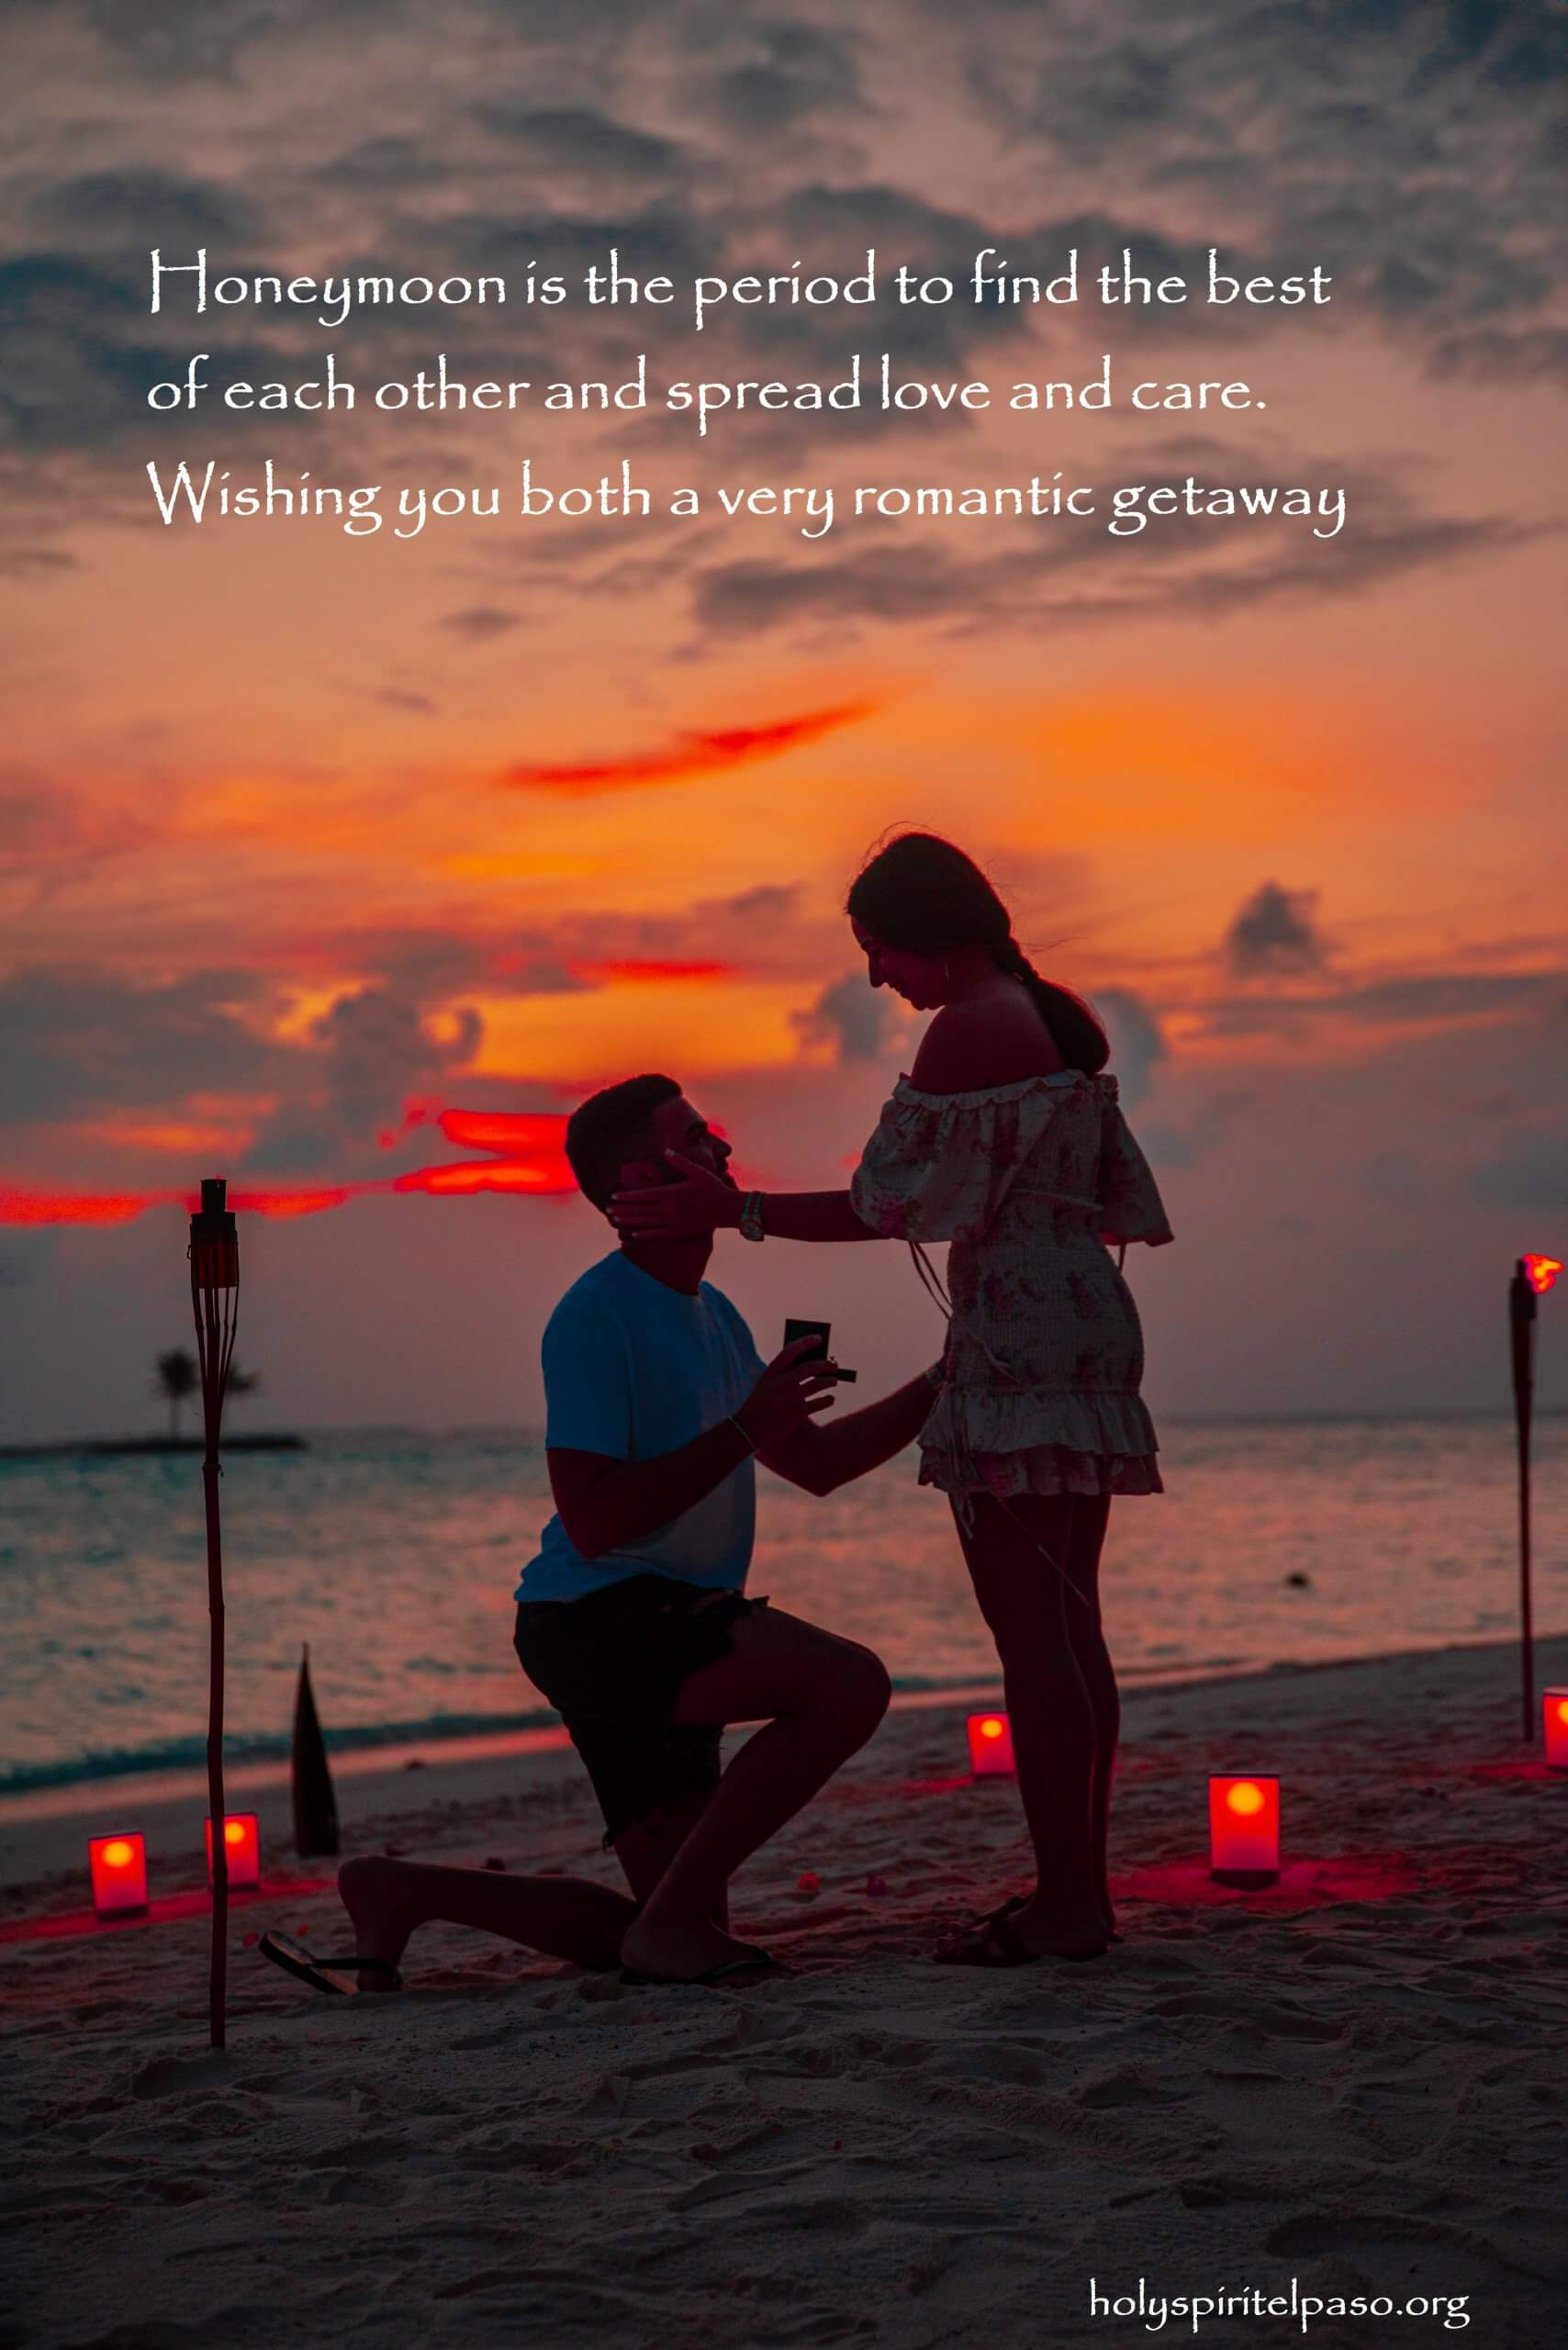 Honeymoon Wishes for Newly Weds